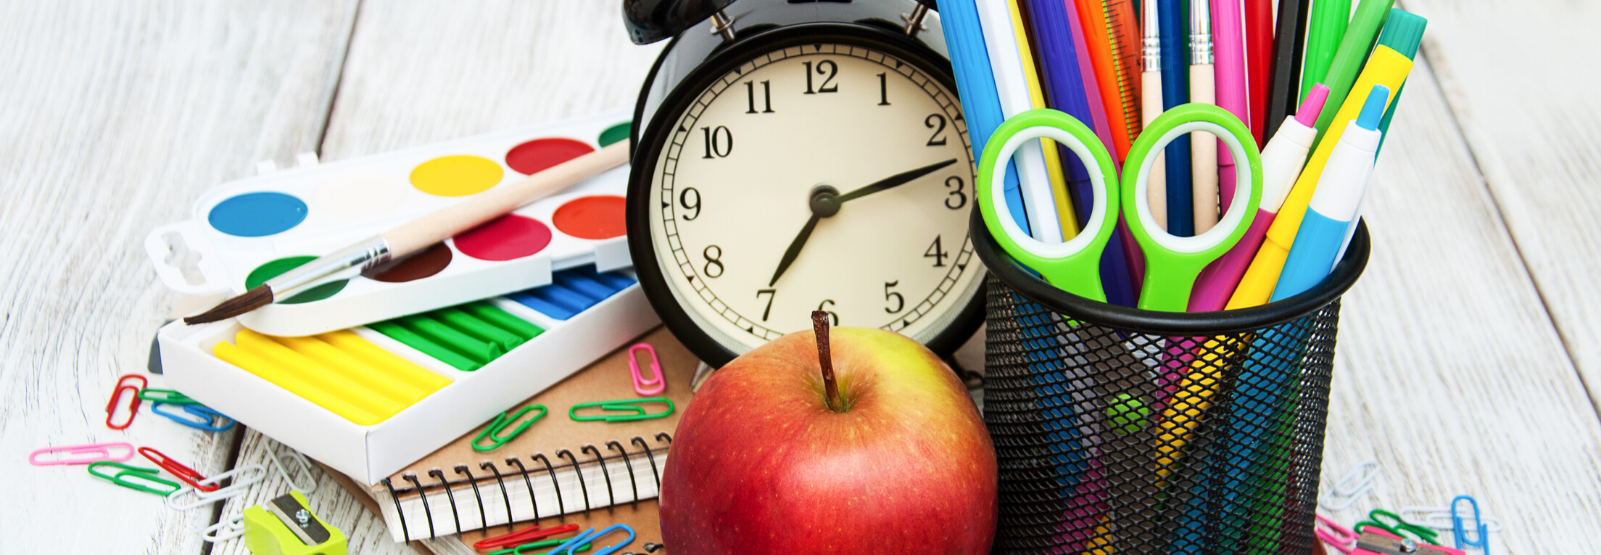 school and art supplies, an alarm clock and an apple